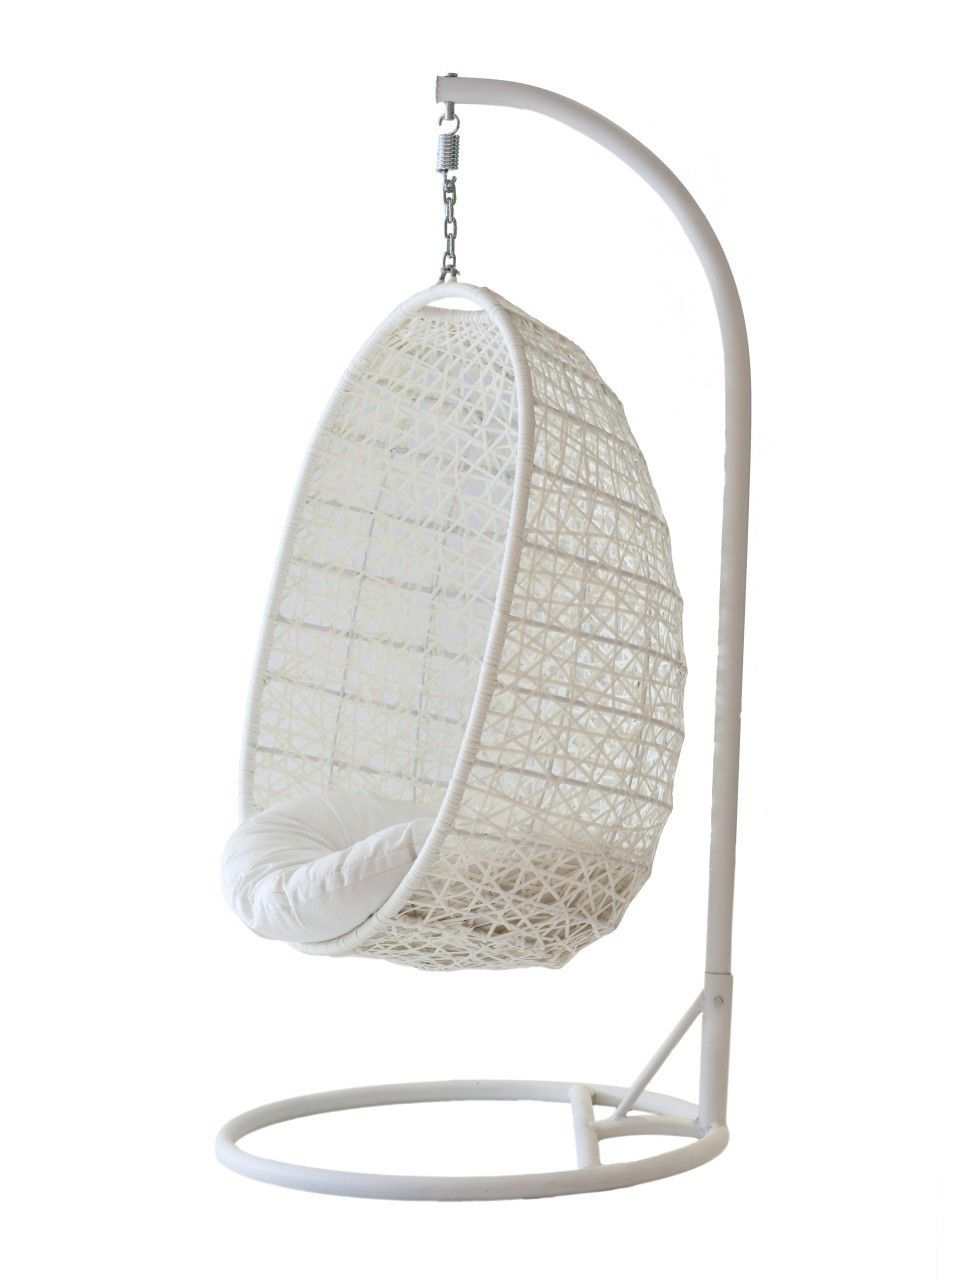 Affordable Hanging Chair For Bedroom Ikea Cool Hanging Chairs For